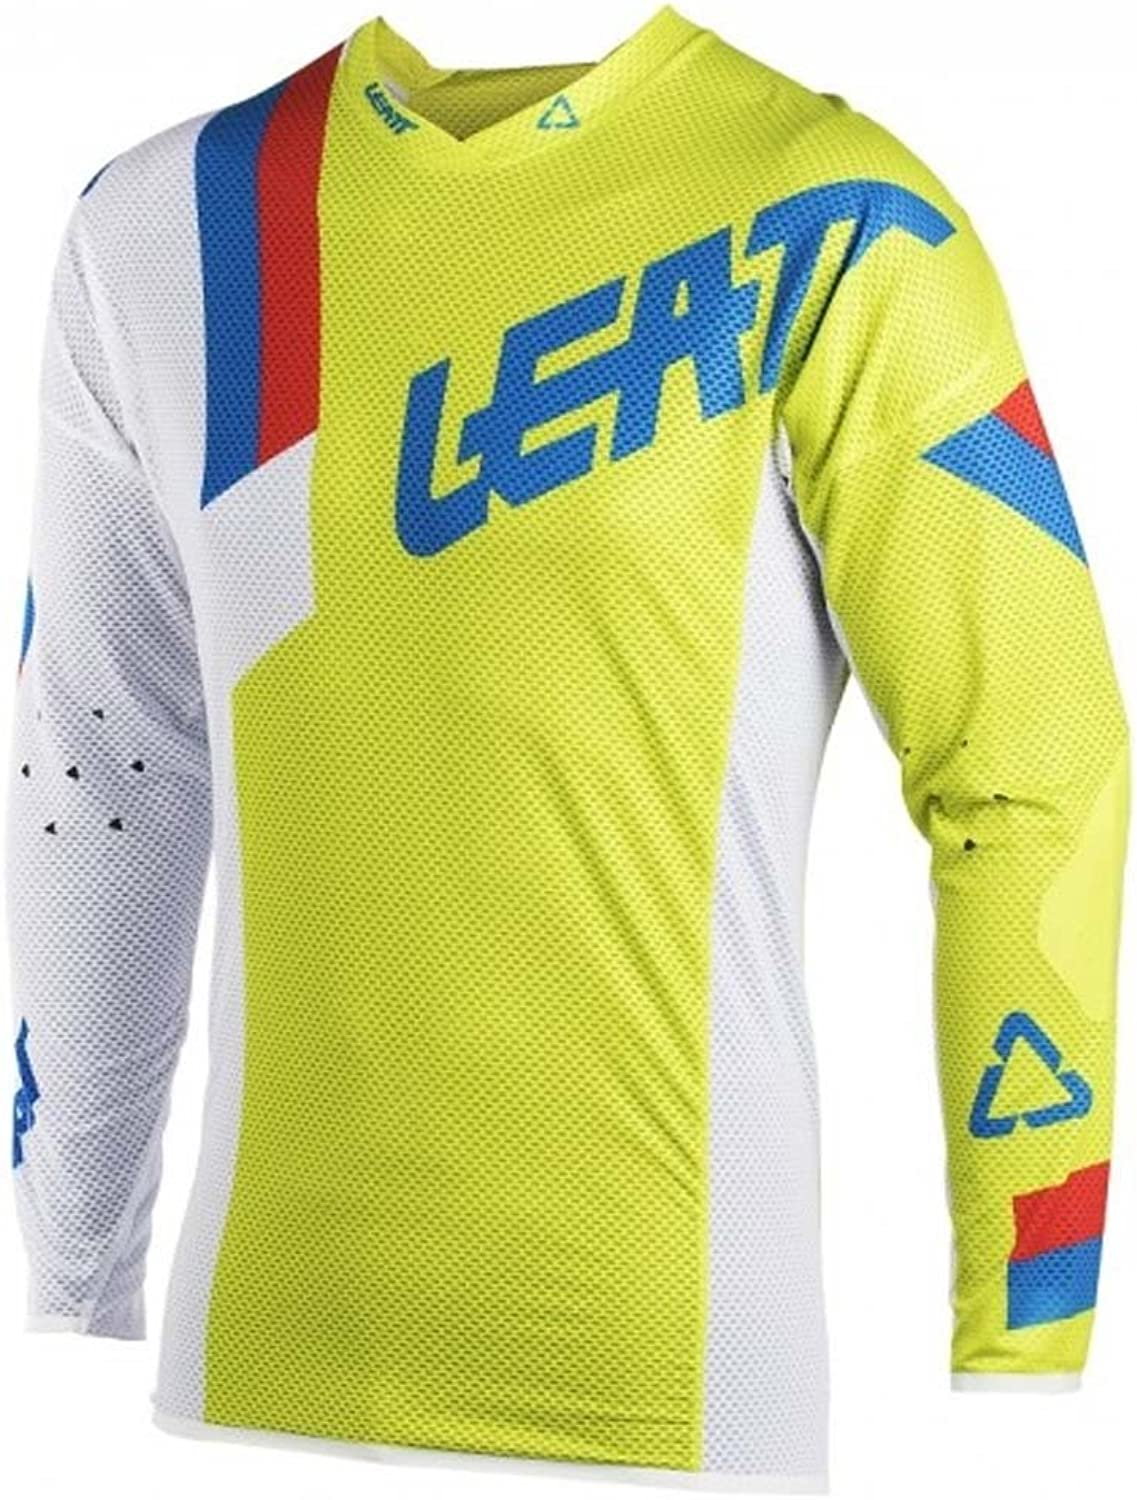 Leatt GPX5.5 Ultraweld Motocross Shit Lime White